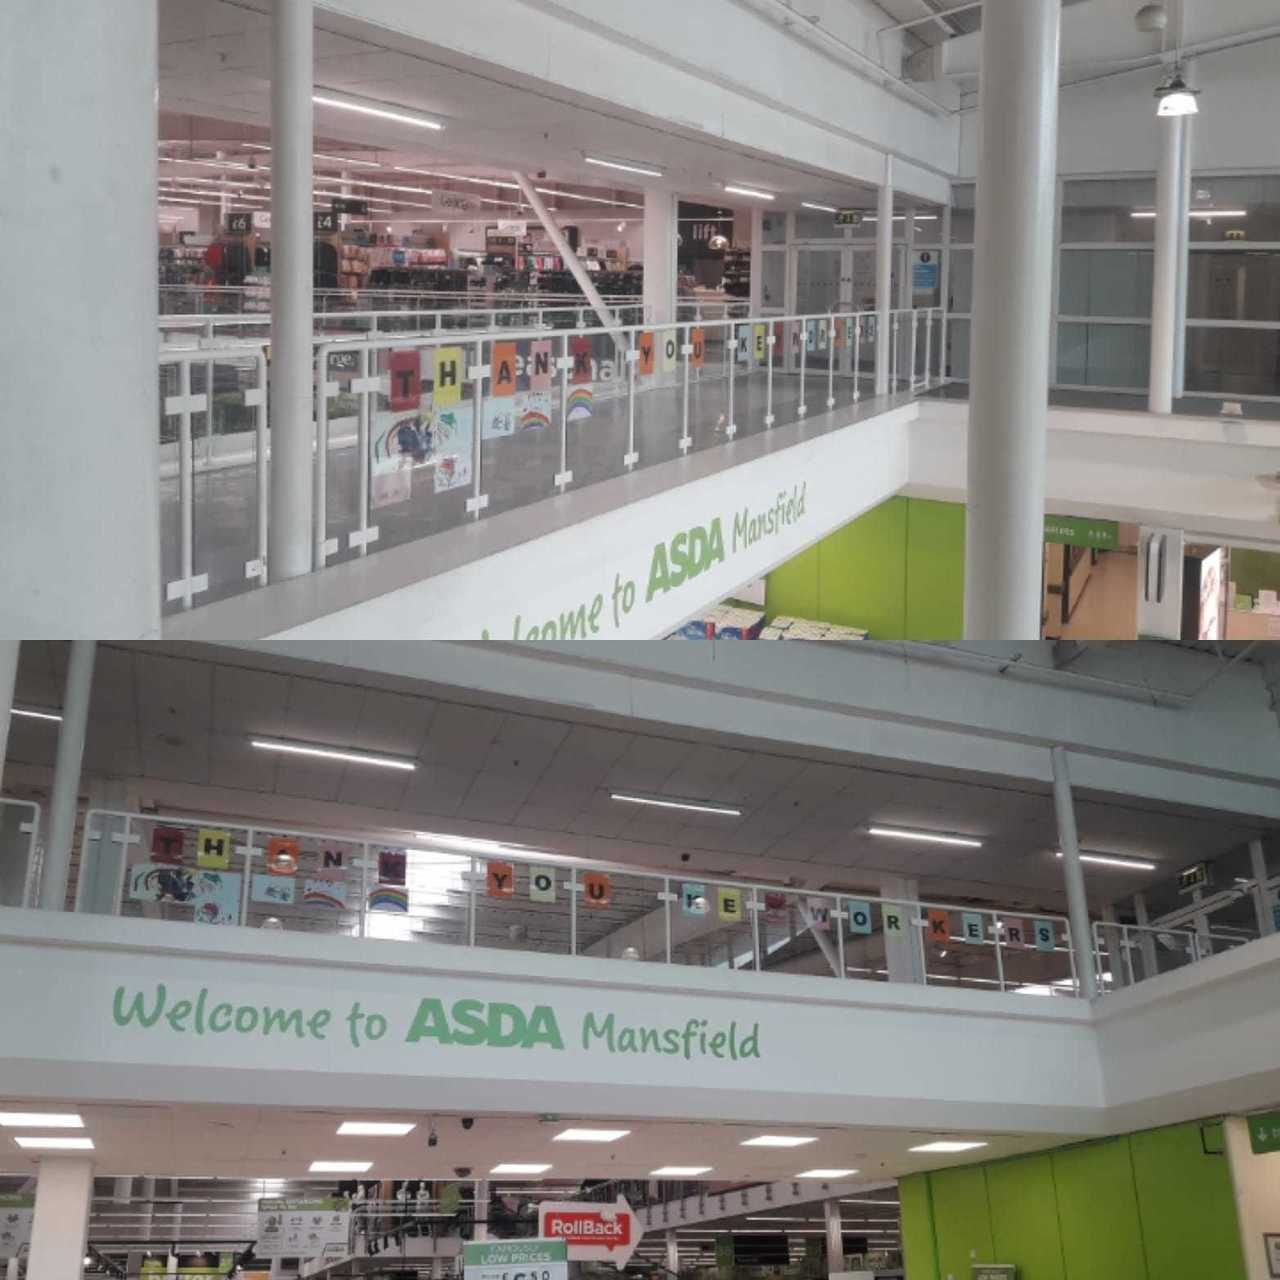 Our rainbow bridge in store to thank keyworkers for doing an amazing job. We are receiving pictures everyday so hopefully we will fill the whole bridge | Asda Mansfield